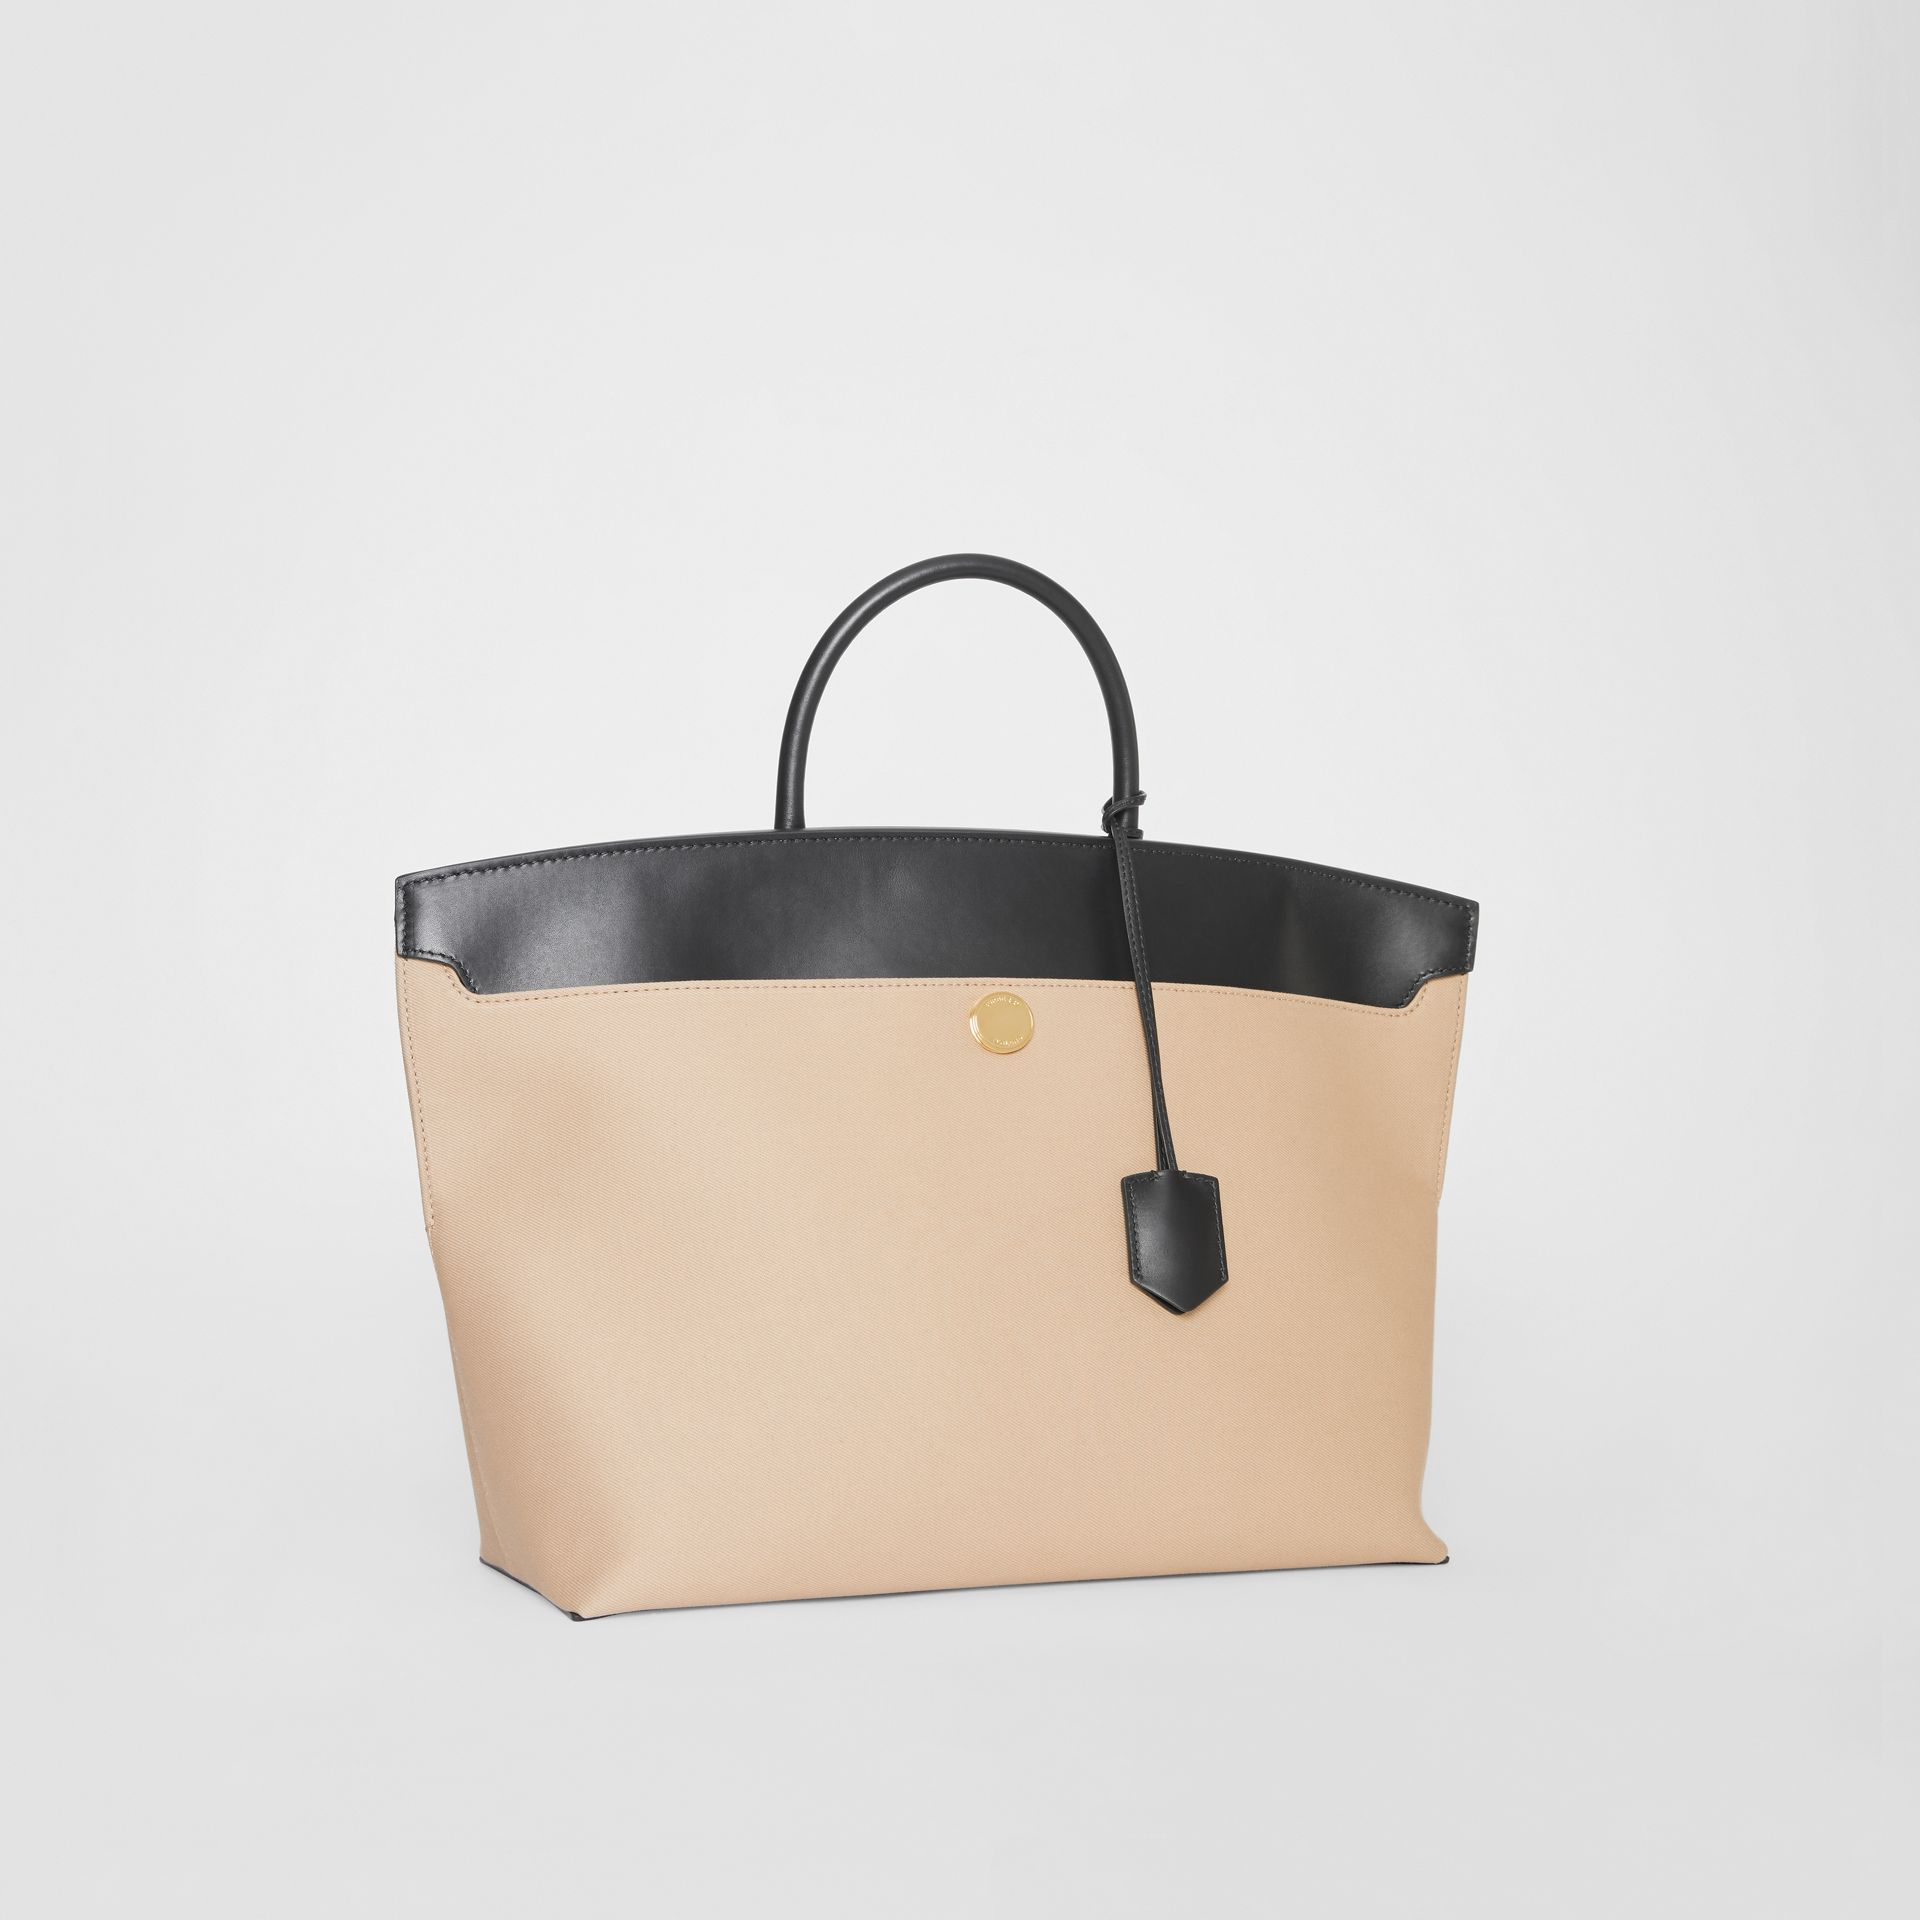 Cotton Canvas and Leather Society Top Handle Bag in Black/honey - Women | Burberry Canada - gallery image 6